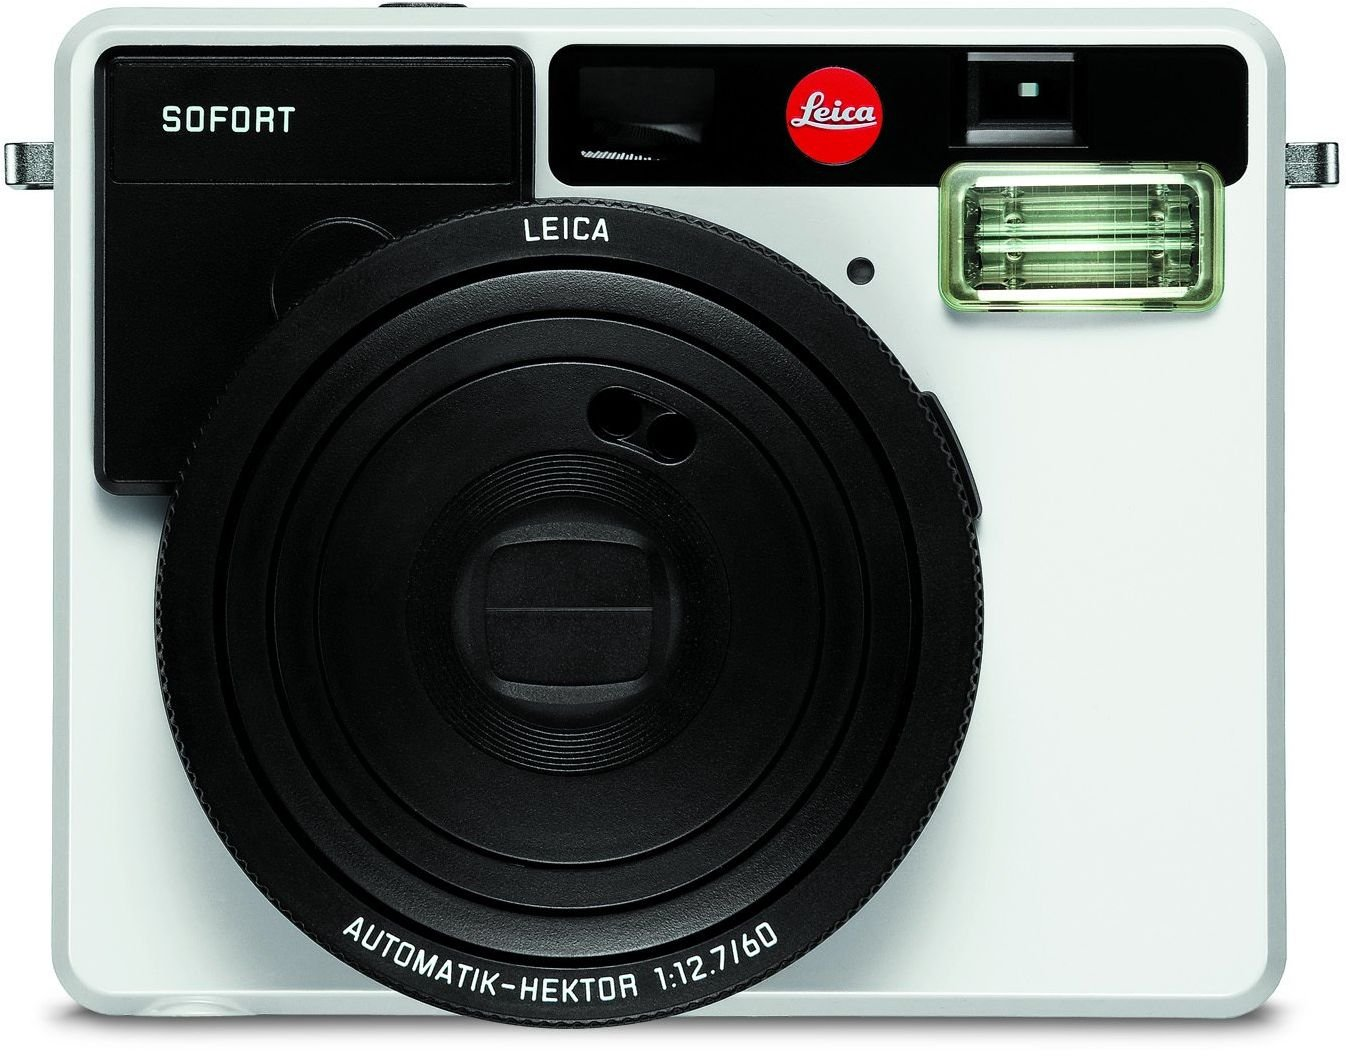 Leica 19106 Sofort Instant Film Camera, White